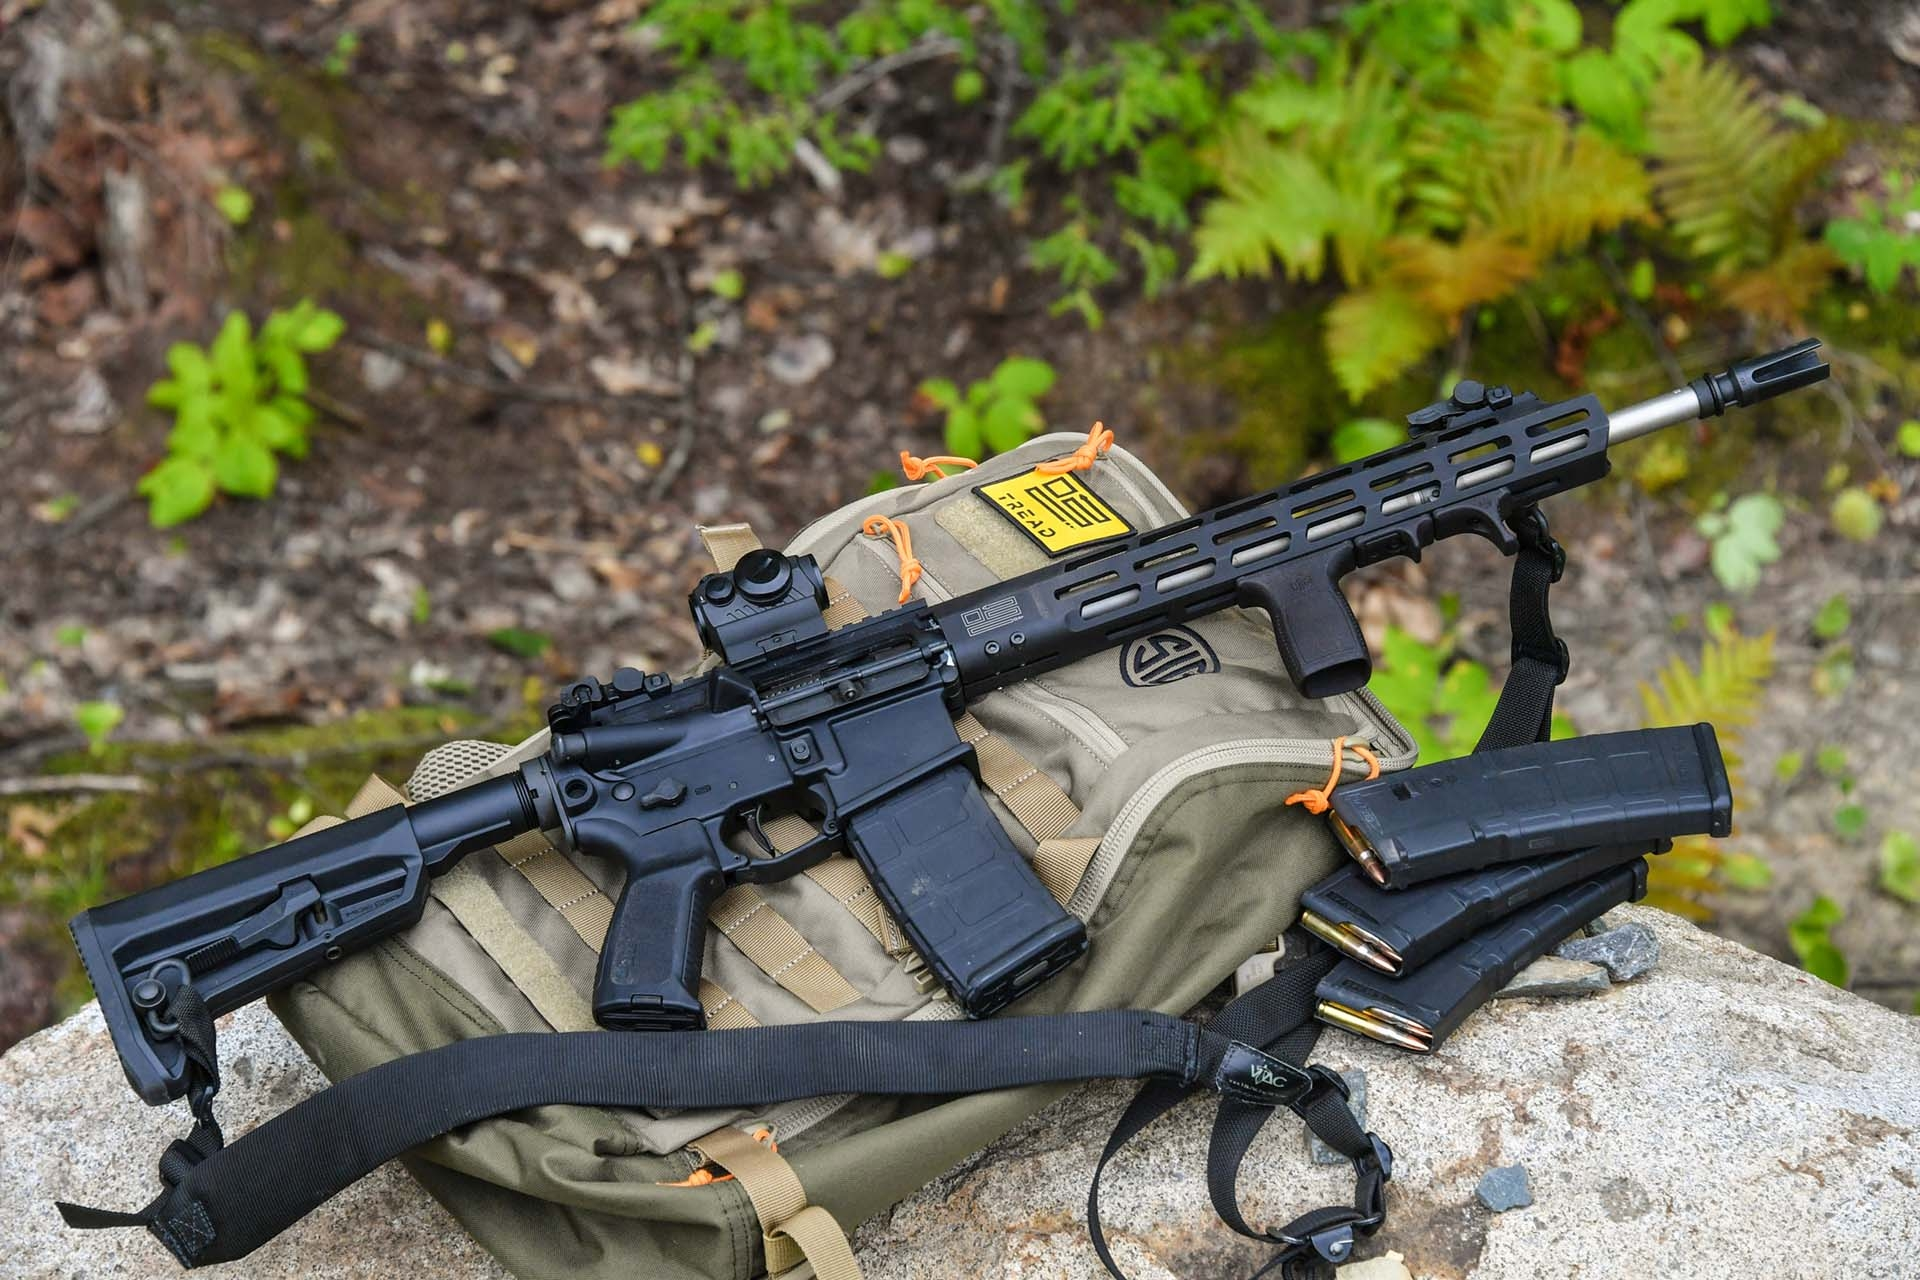 sig-sauer: SIG Sauer M400 TREAD rifle - first shooting test and exclusive video